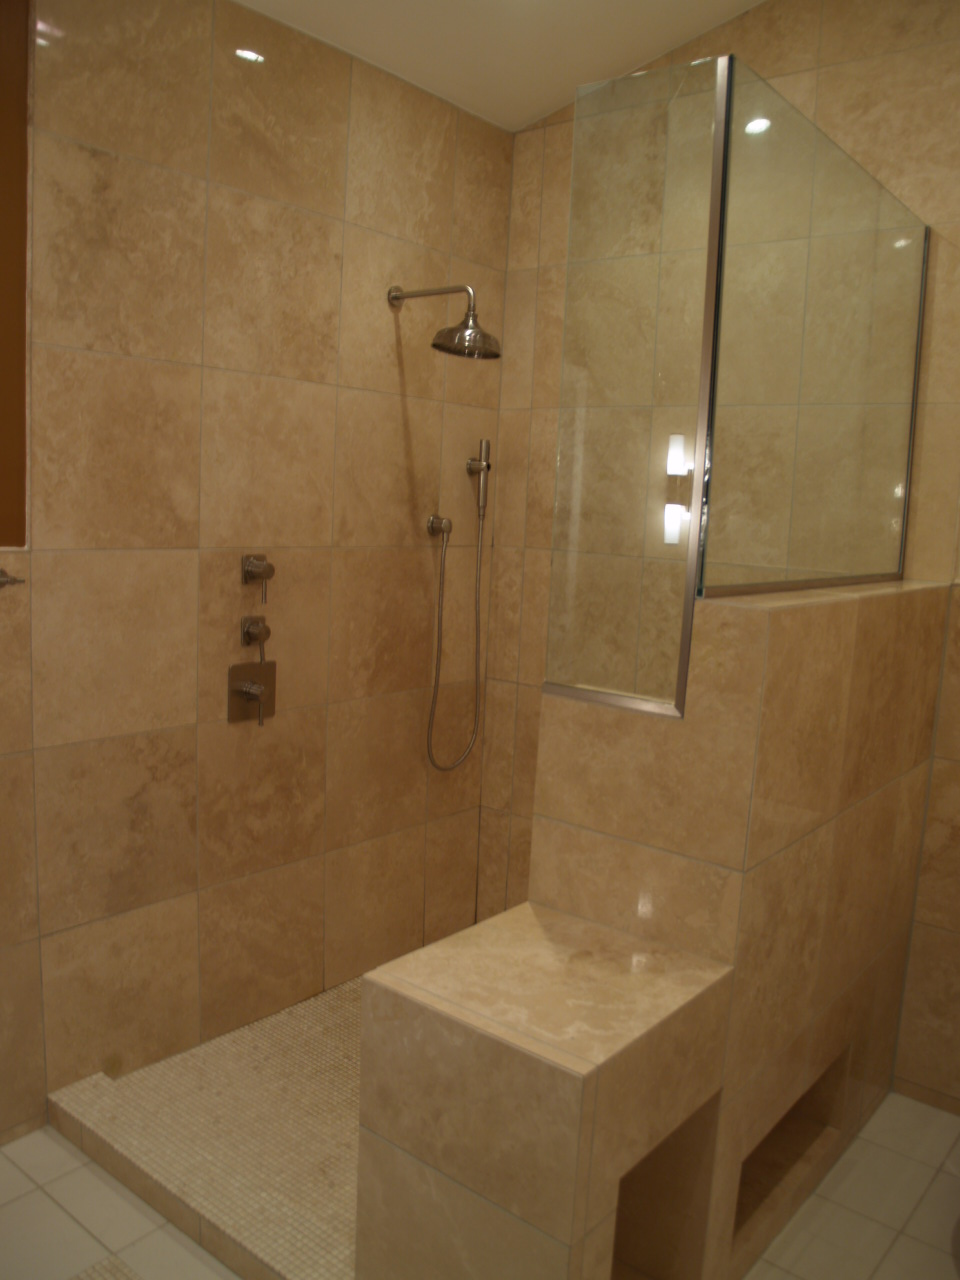 C.Kattar. shower, towel nich and toilet niche..JPG